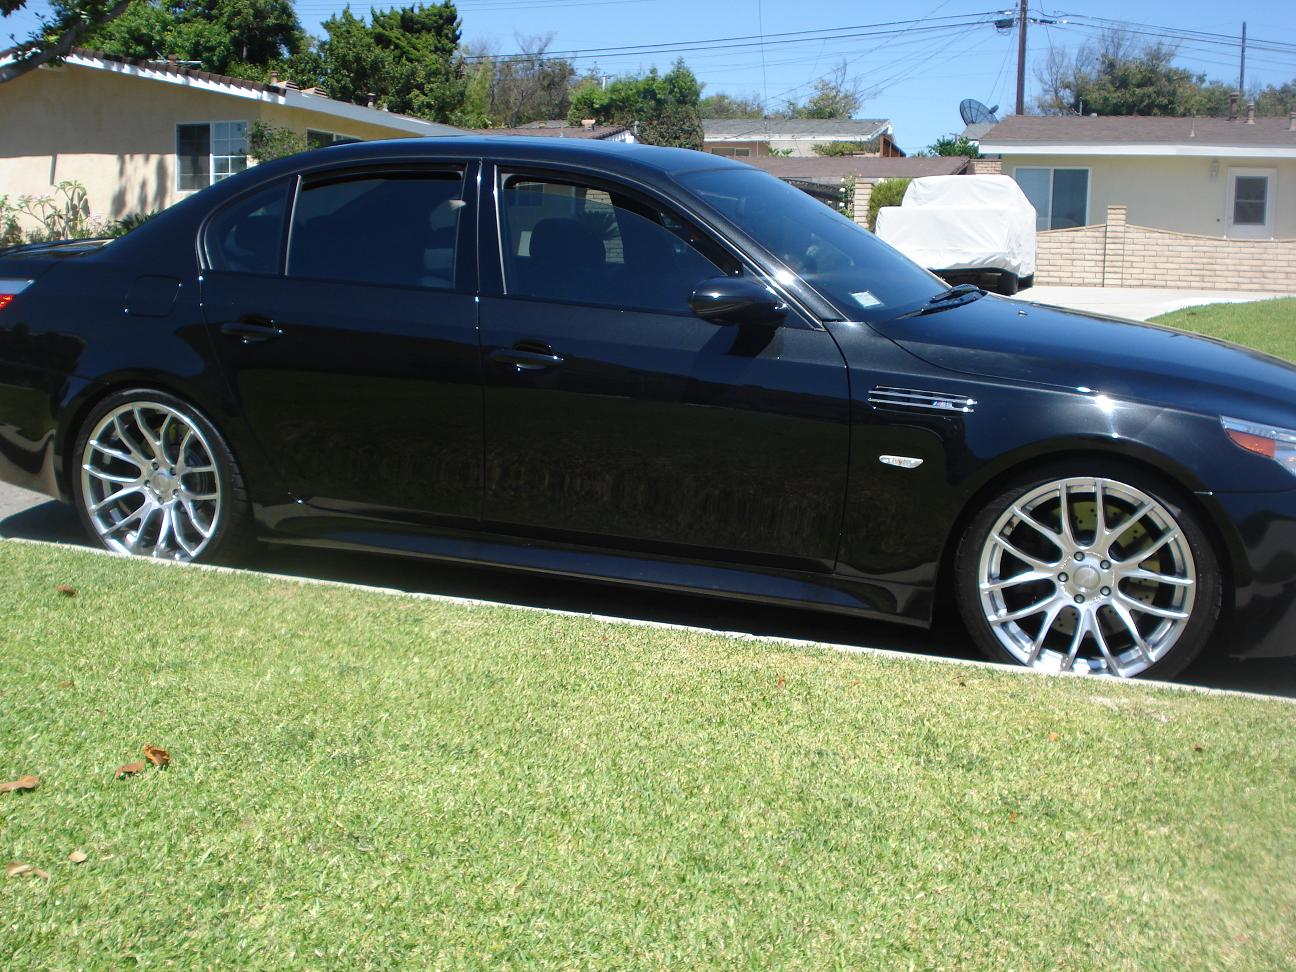 e60 03 10 for sale 20 breyton race gts wheels and tires. Black Bedroom Furniture Sets. Home Design Ideas